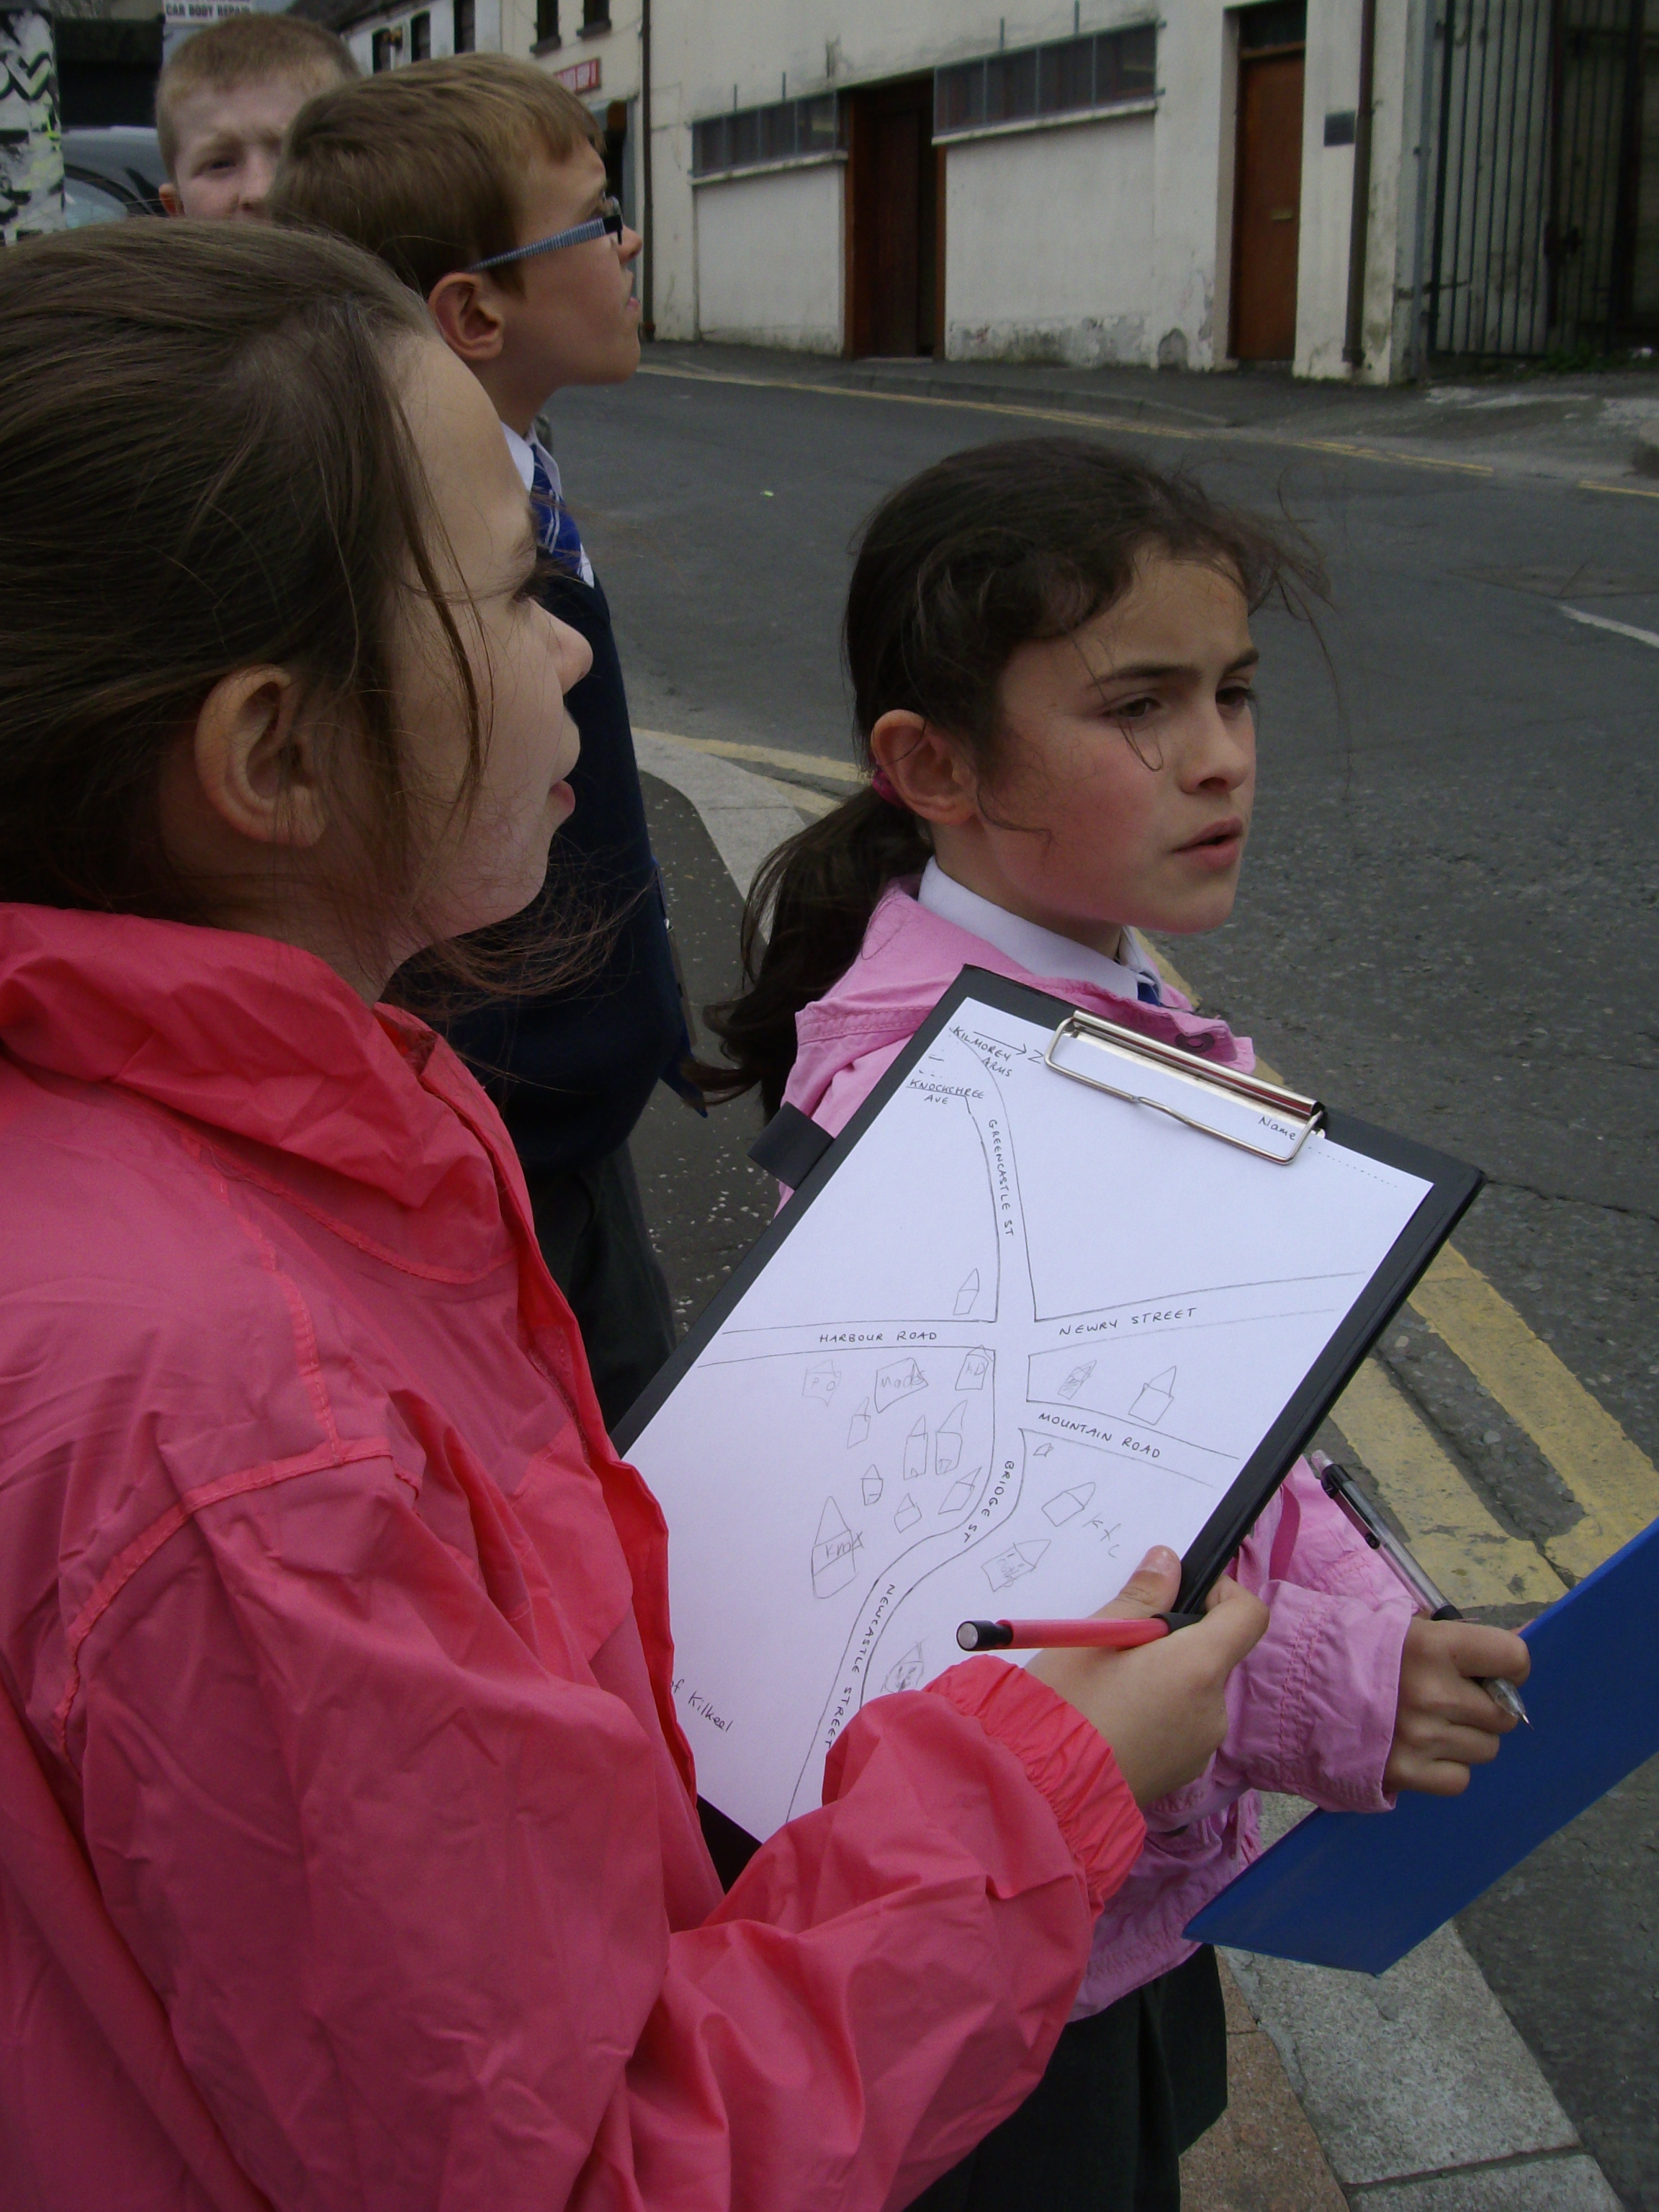 Year 5-7 pupils carrying out investigative work in Kilkeel town centre